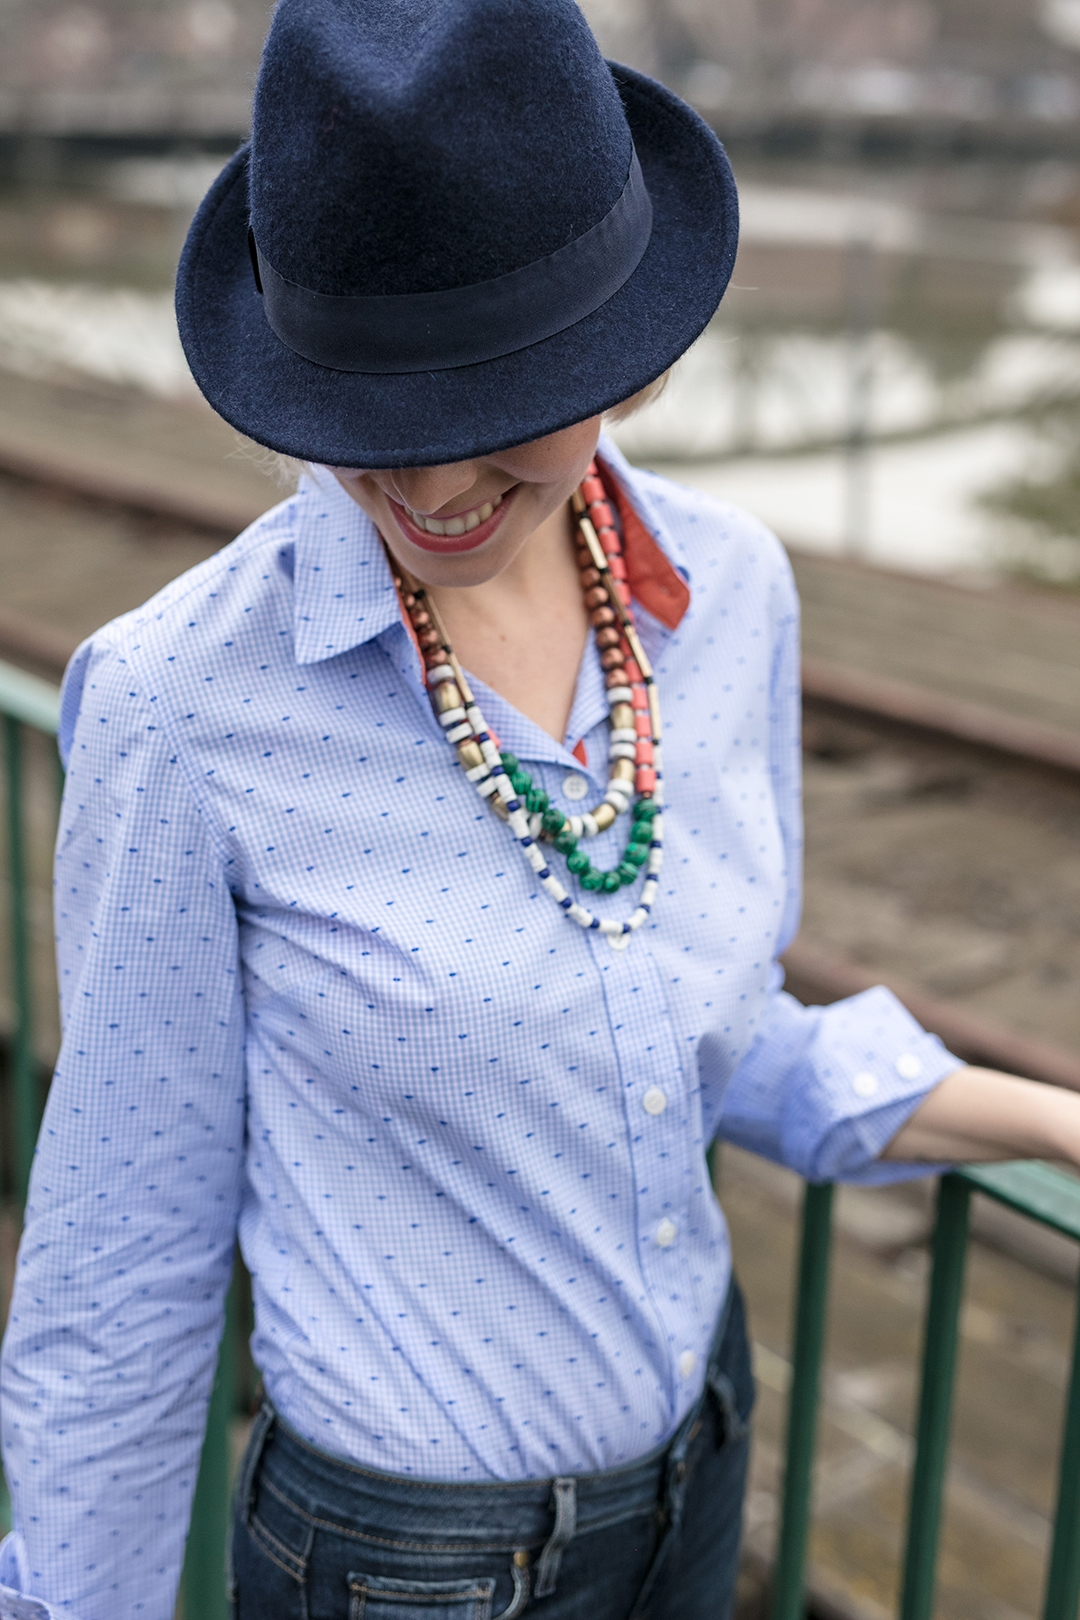 824a81cf1fad Just in time for Spring, let's welcome our all-time favorite foundational  wardrobe piece – the Amy Shirt! Reappearing in a perfect Blue Gingham, ...